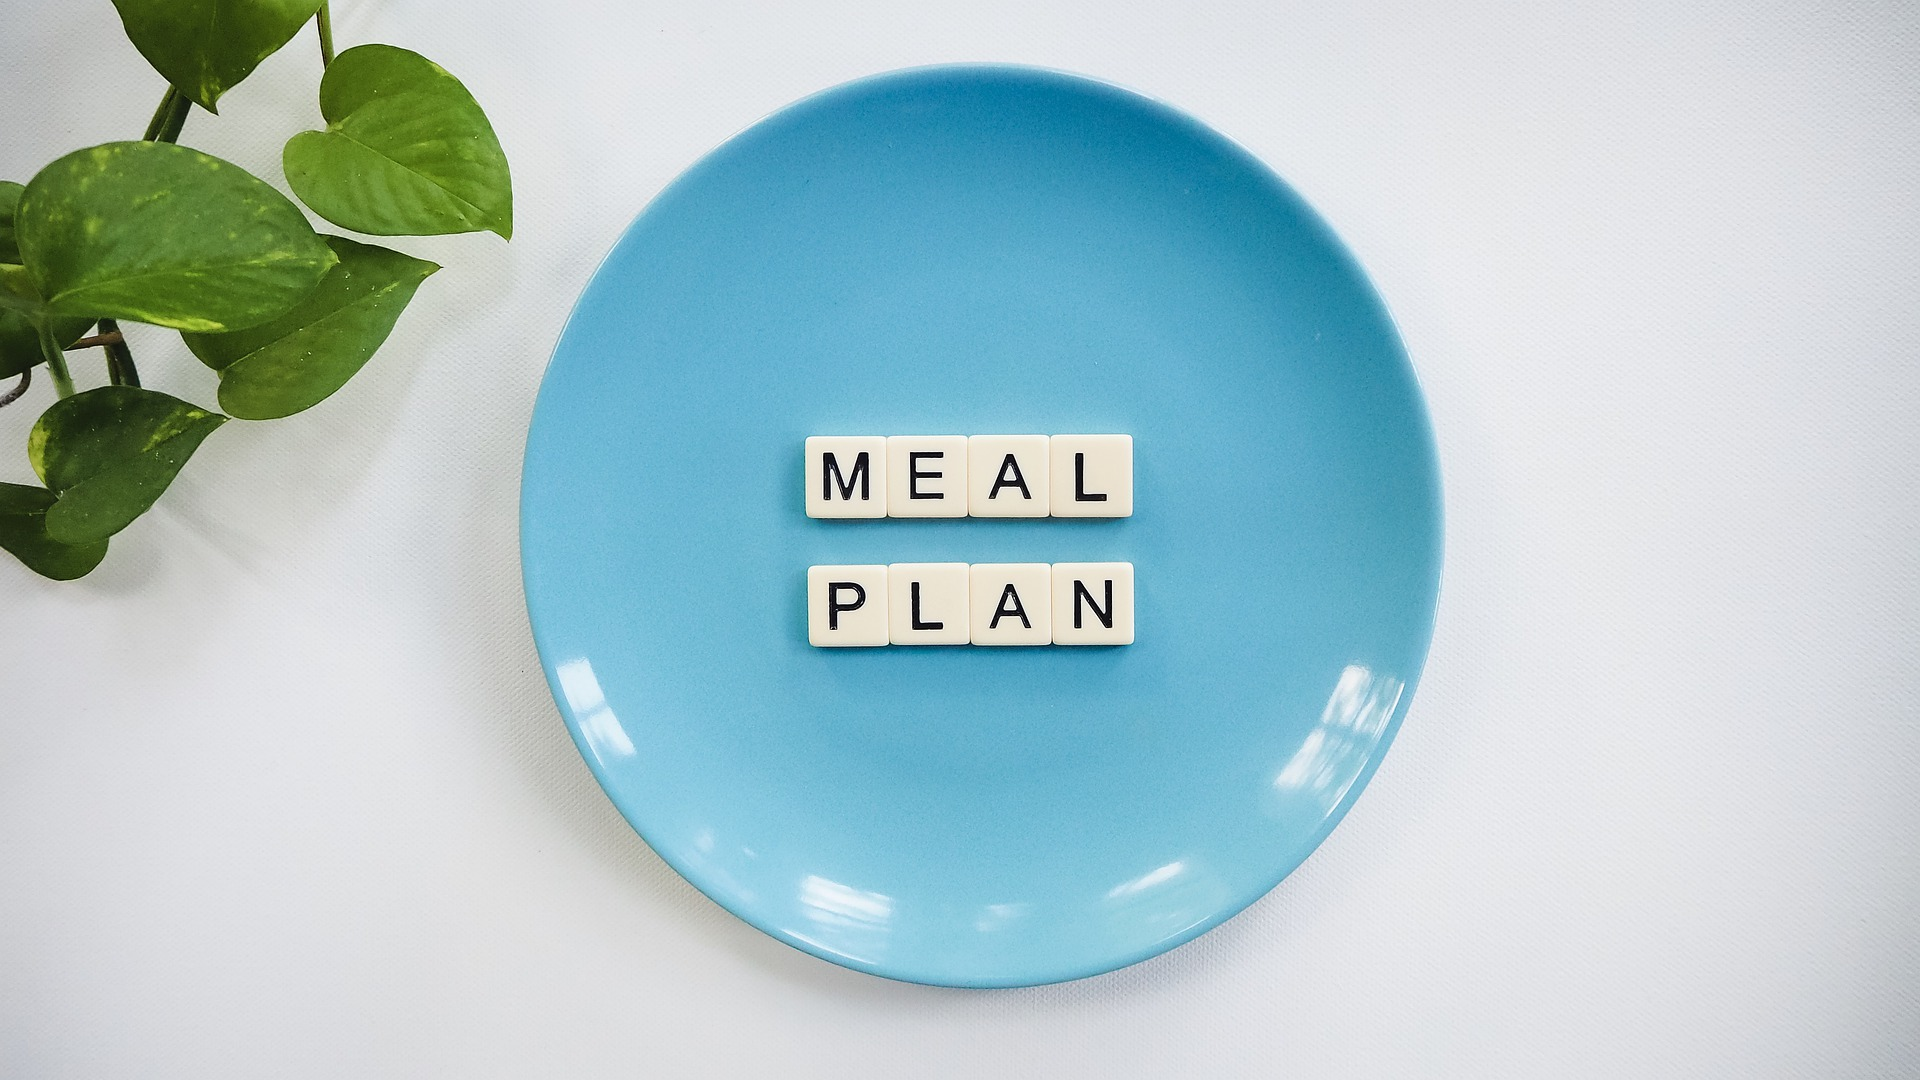 Meal Plan - Health Doctoring